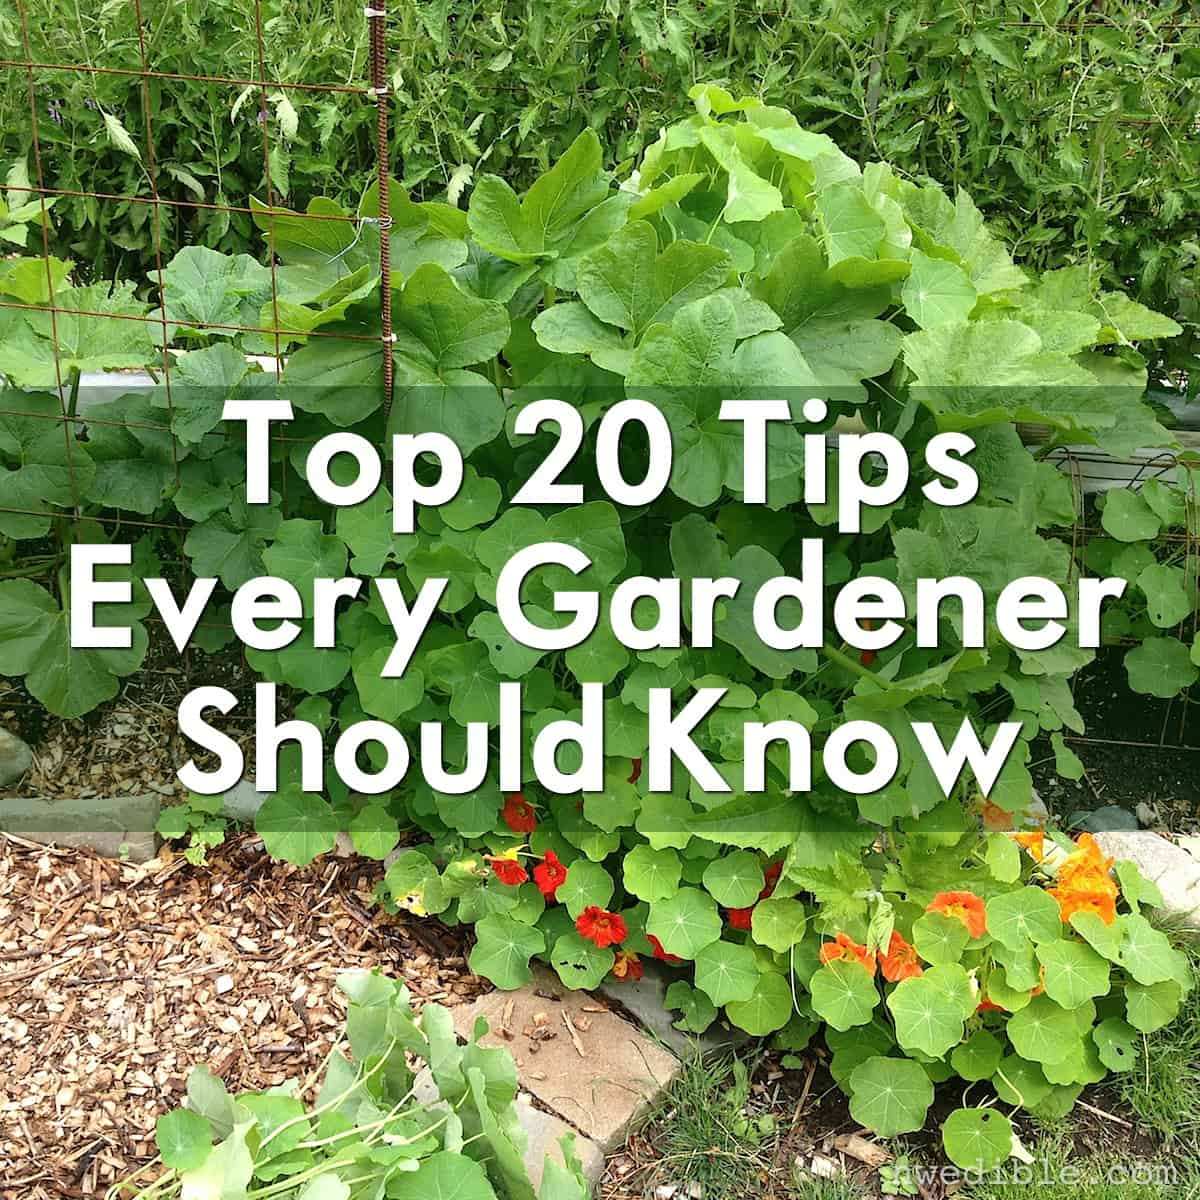 Advice For Planting Fall Vegetable Gardens: Top 20 Tips Every Gardener Should Know